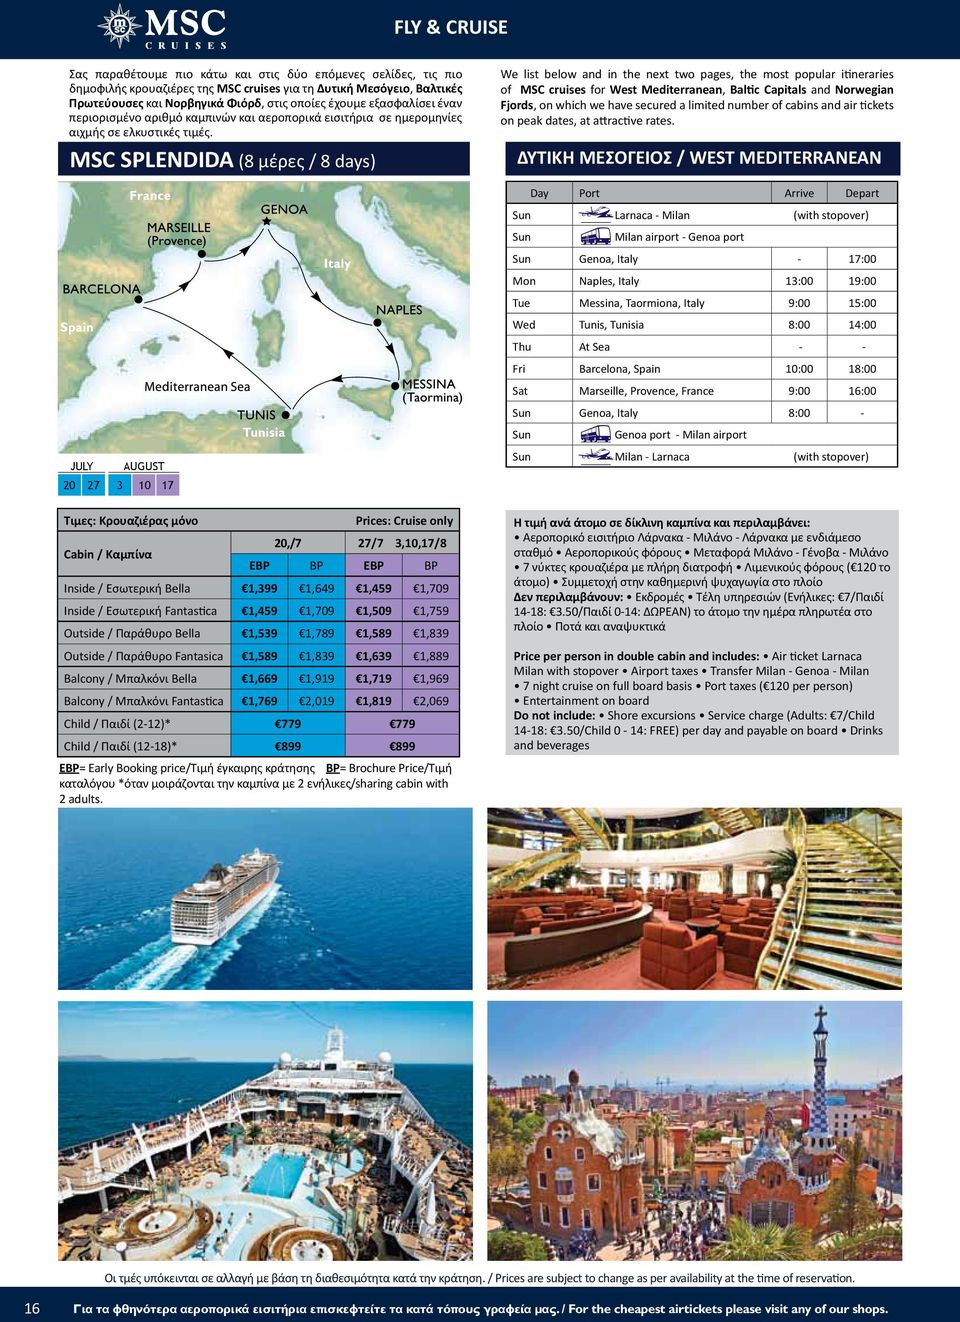 MSC SPLENDIDA (8 μέρες / 8 days) JULY AUGUST 20 27 3 10 17 20,/7 27/7 3,10,17/8 EBP BP EBP BP Inside / Εσωτερική Bella 1,399 1,649 1,459 1,709 Inside / Εσωτερική Fantastica 1,459 1,709 1,509 1,759